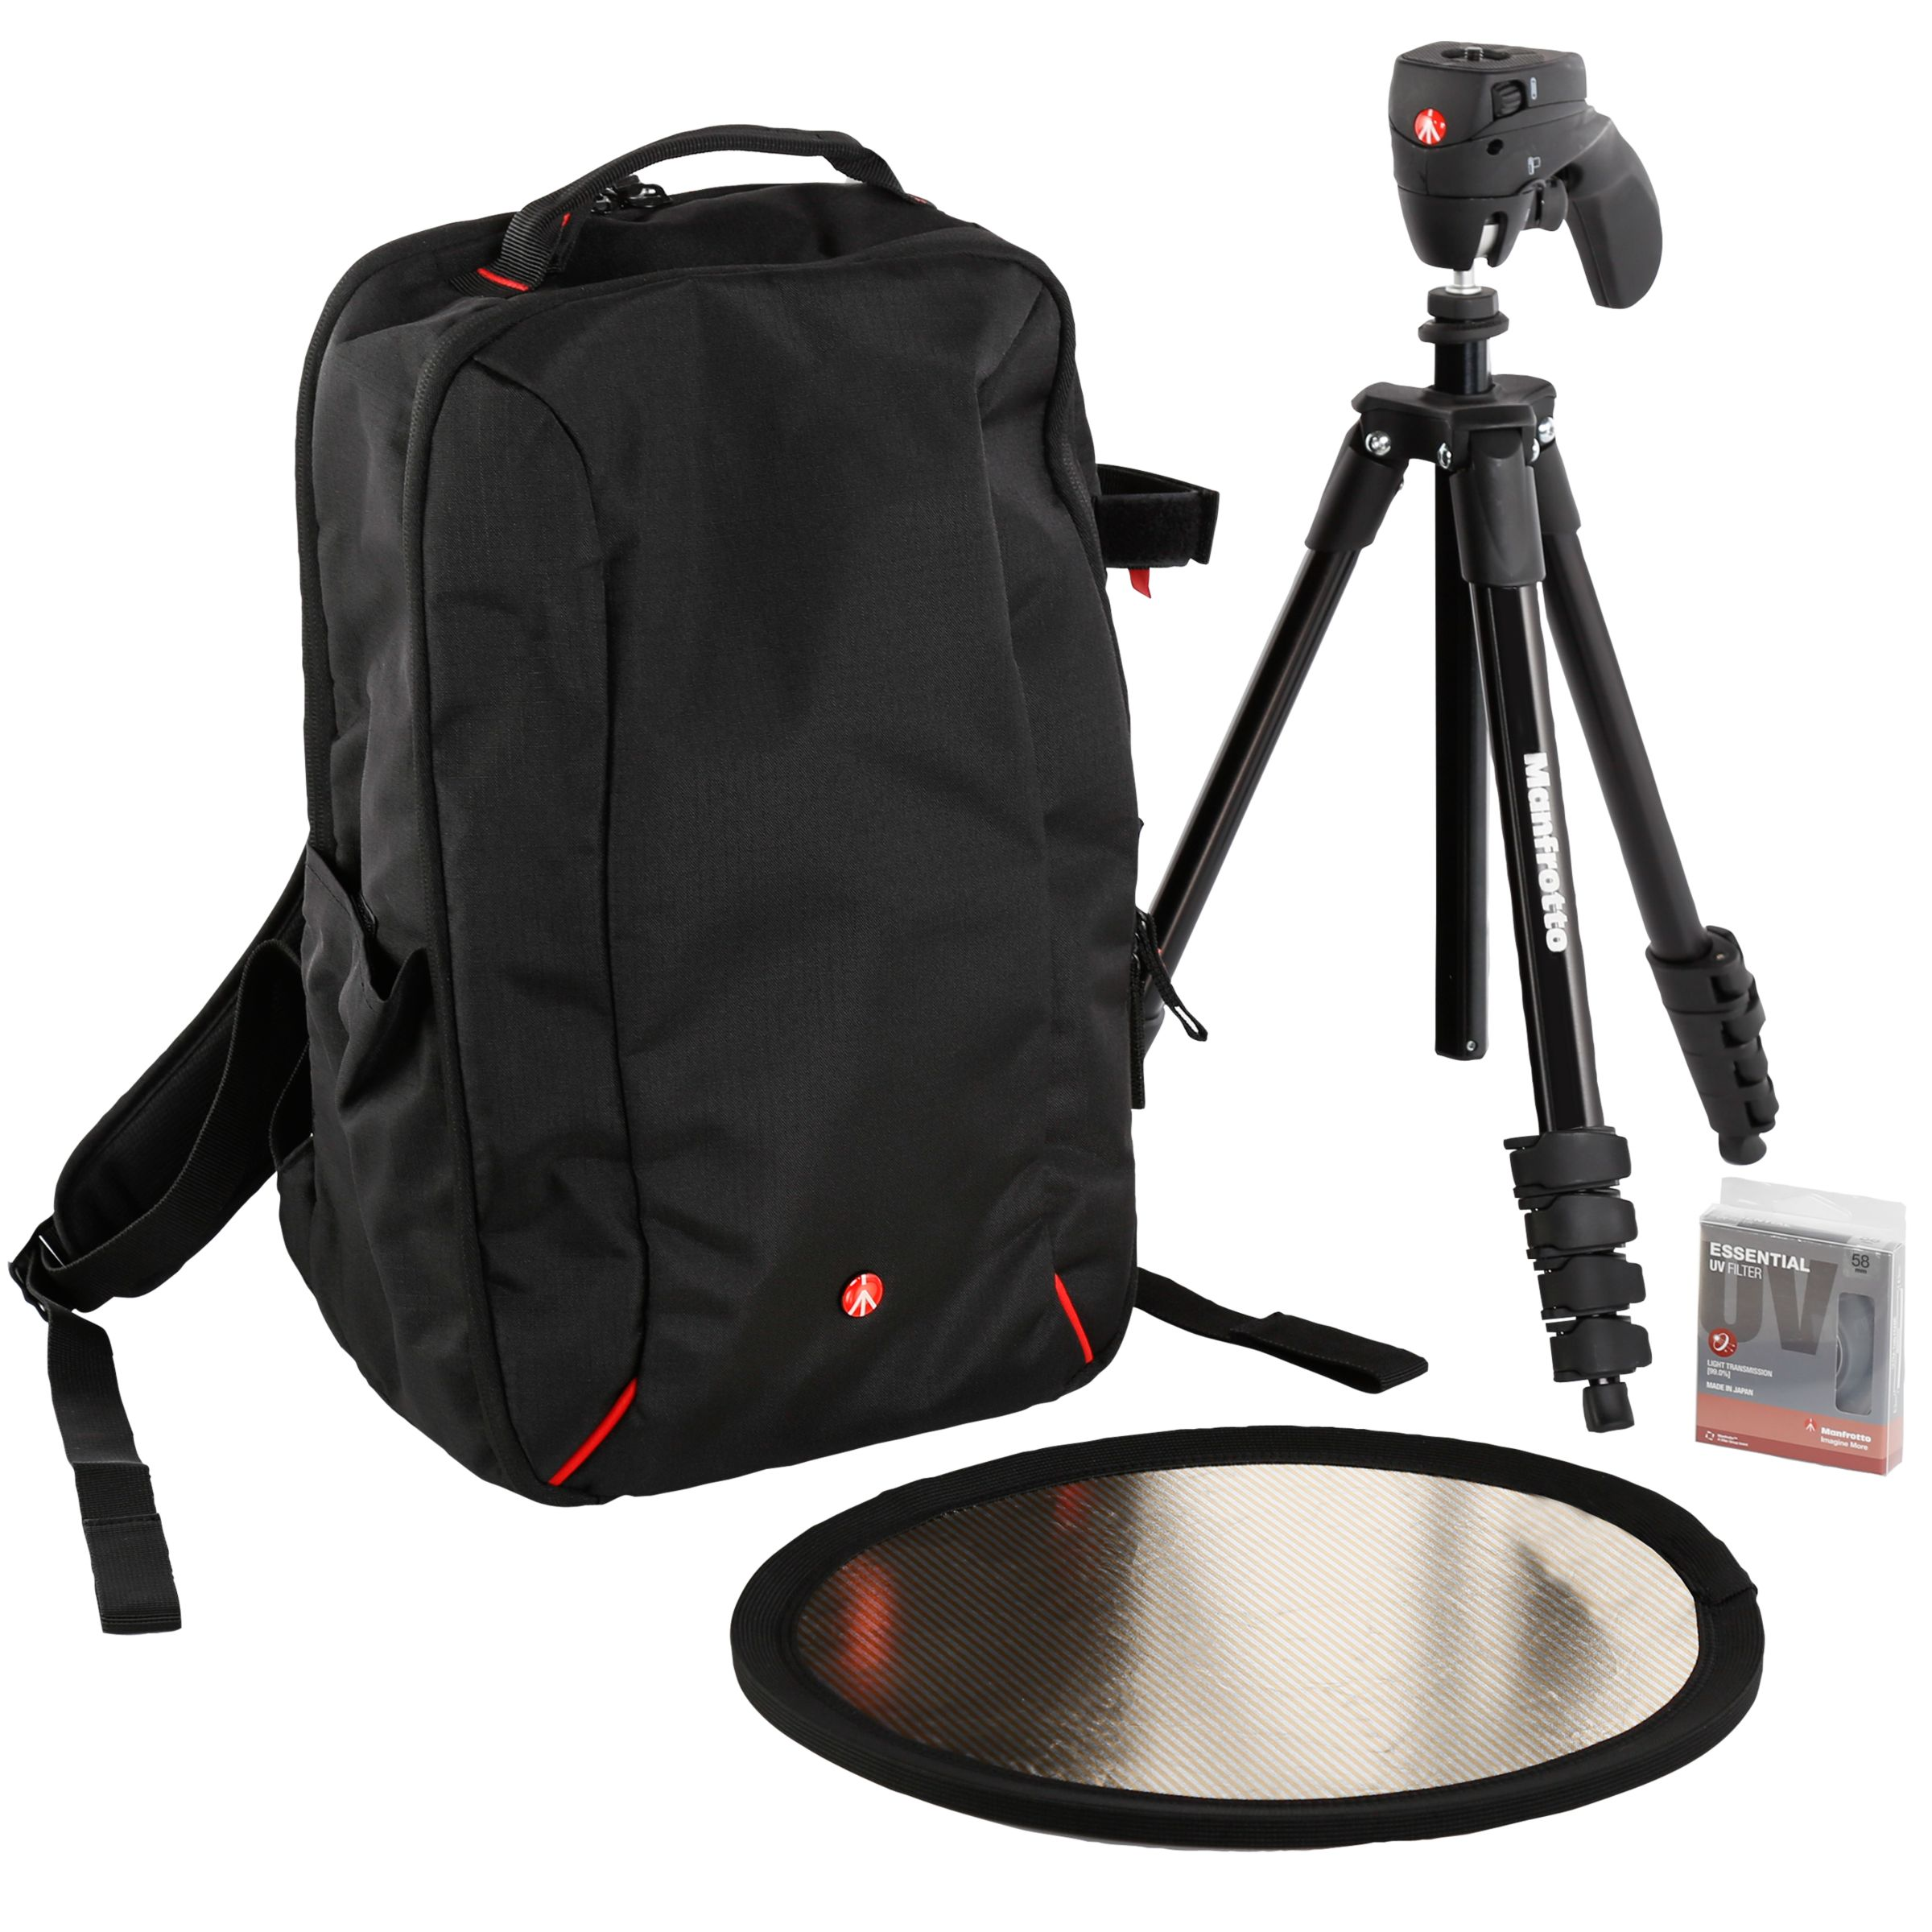 Manfrotto Manfrotto DSLR Accessories Starter Kit for Canon Cameras with Backpack, Tripod, Reflector & UV Filter